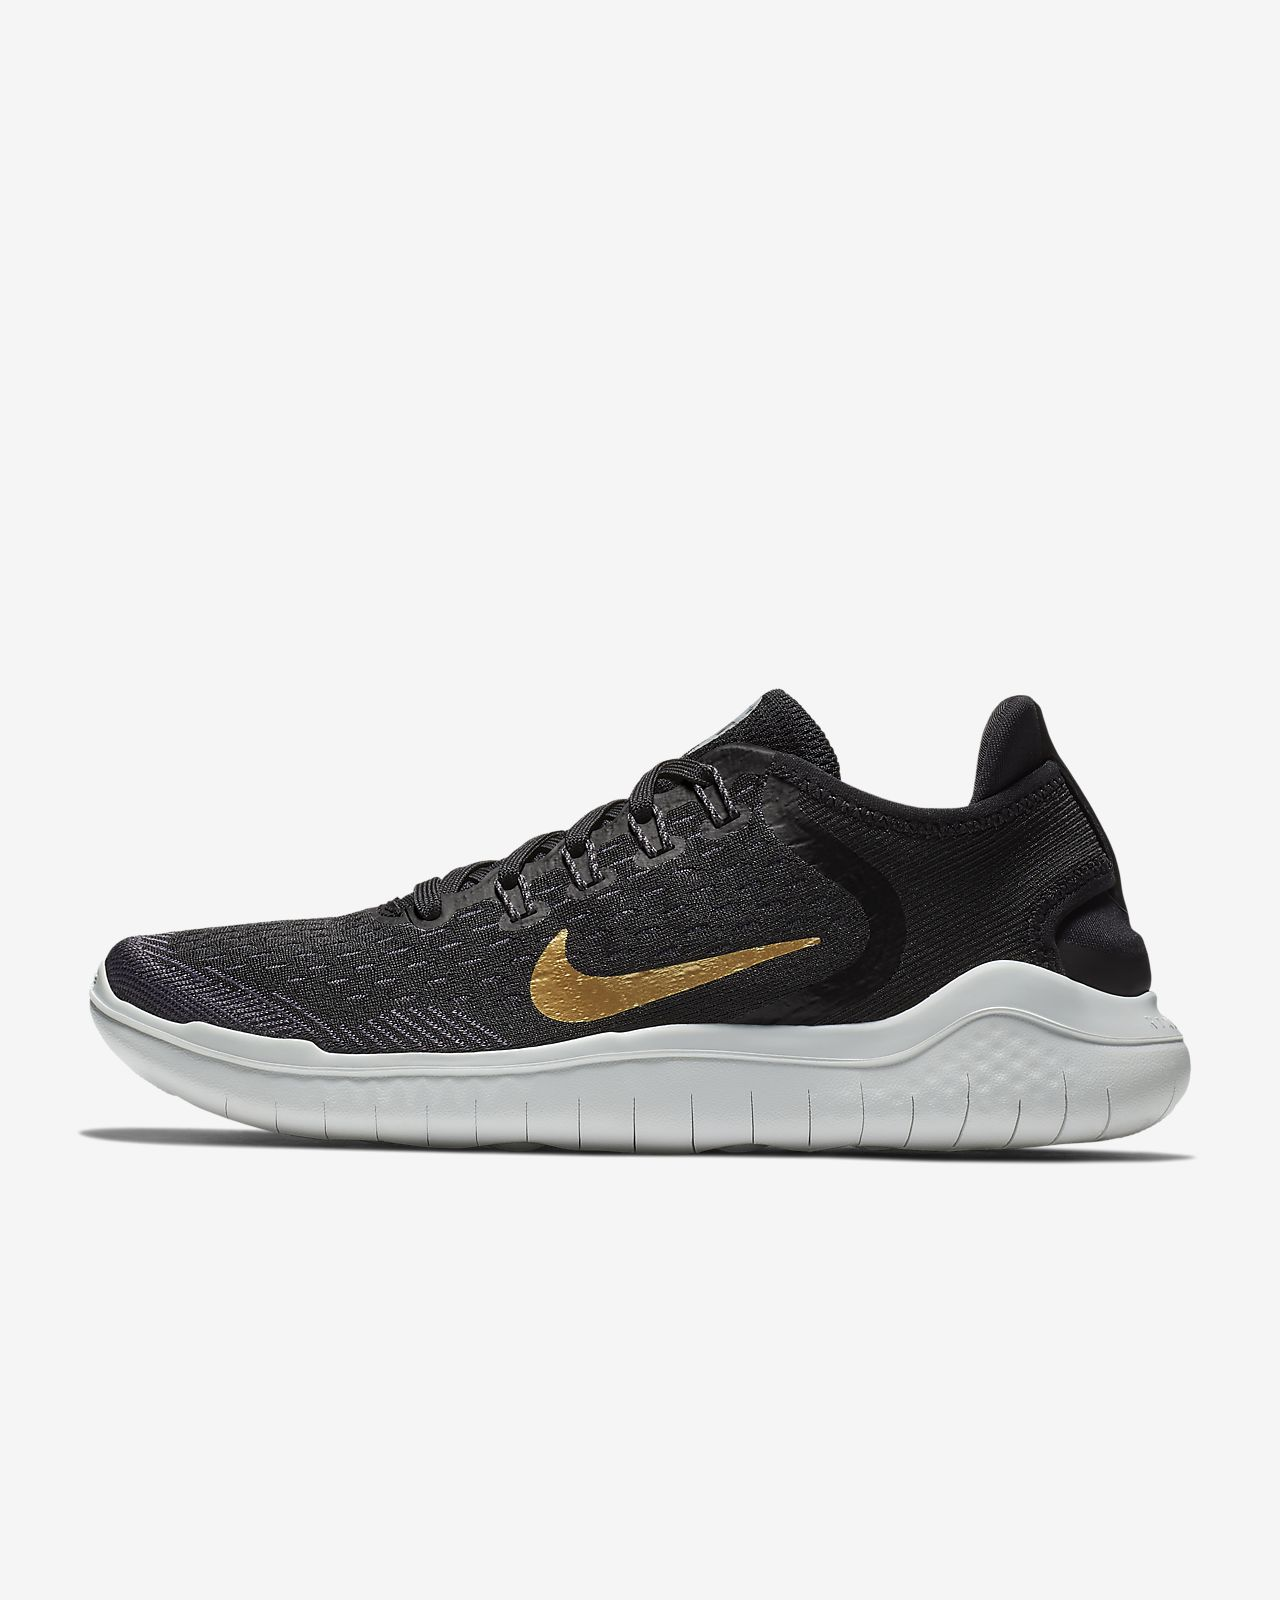 best loved 40c3c a0bf0 ... Nike Free RN 2018 Women s Running Shoe